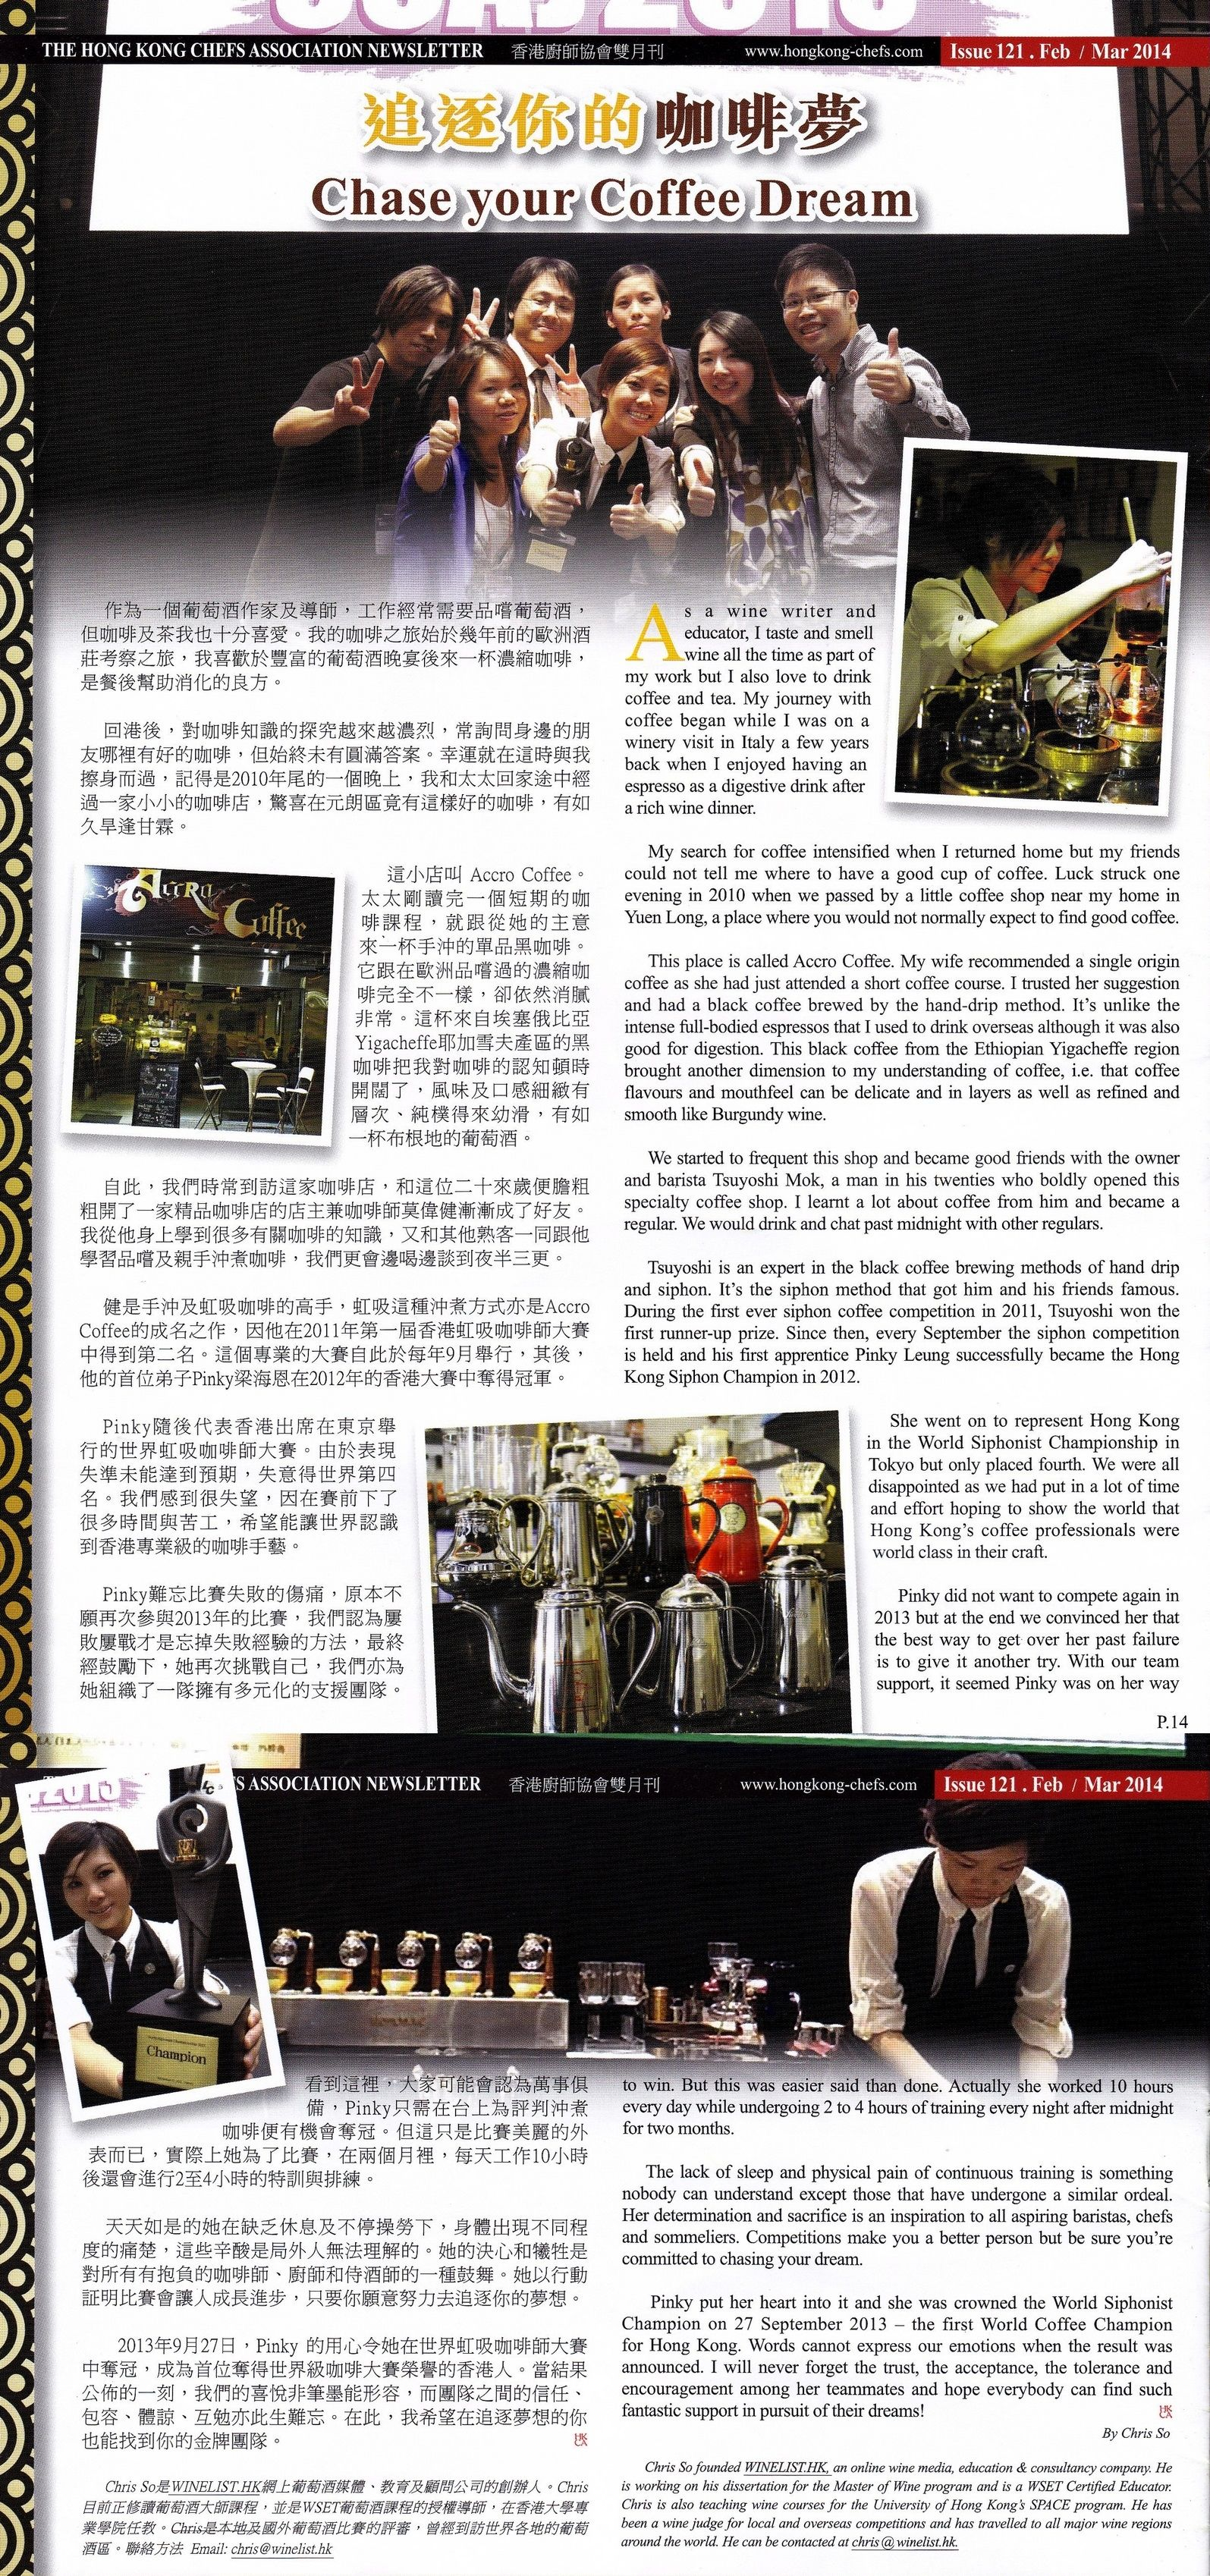 Chase your Coffee Dream_The Hong Kong Chefs Association Newsletter Feb2014_accro